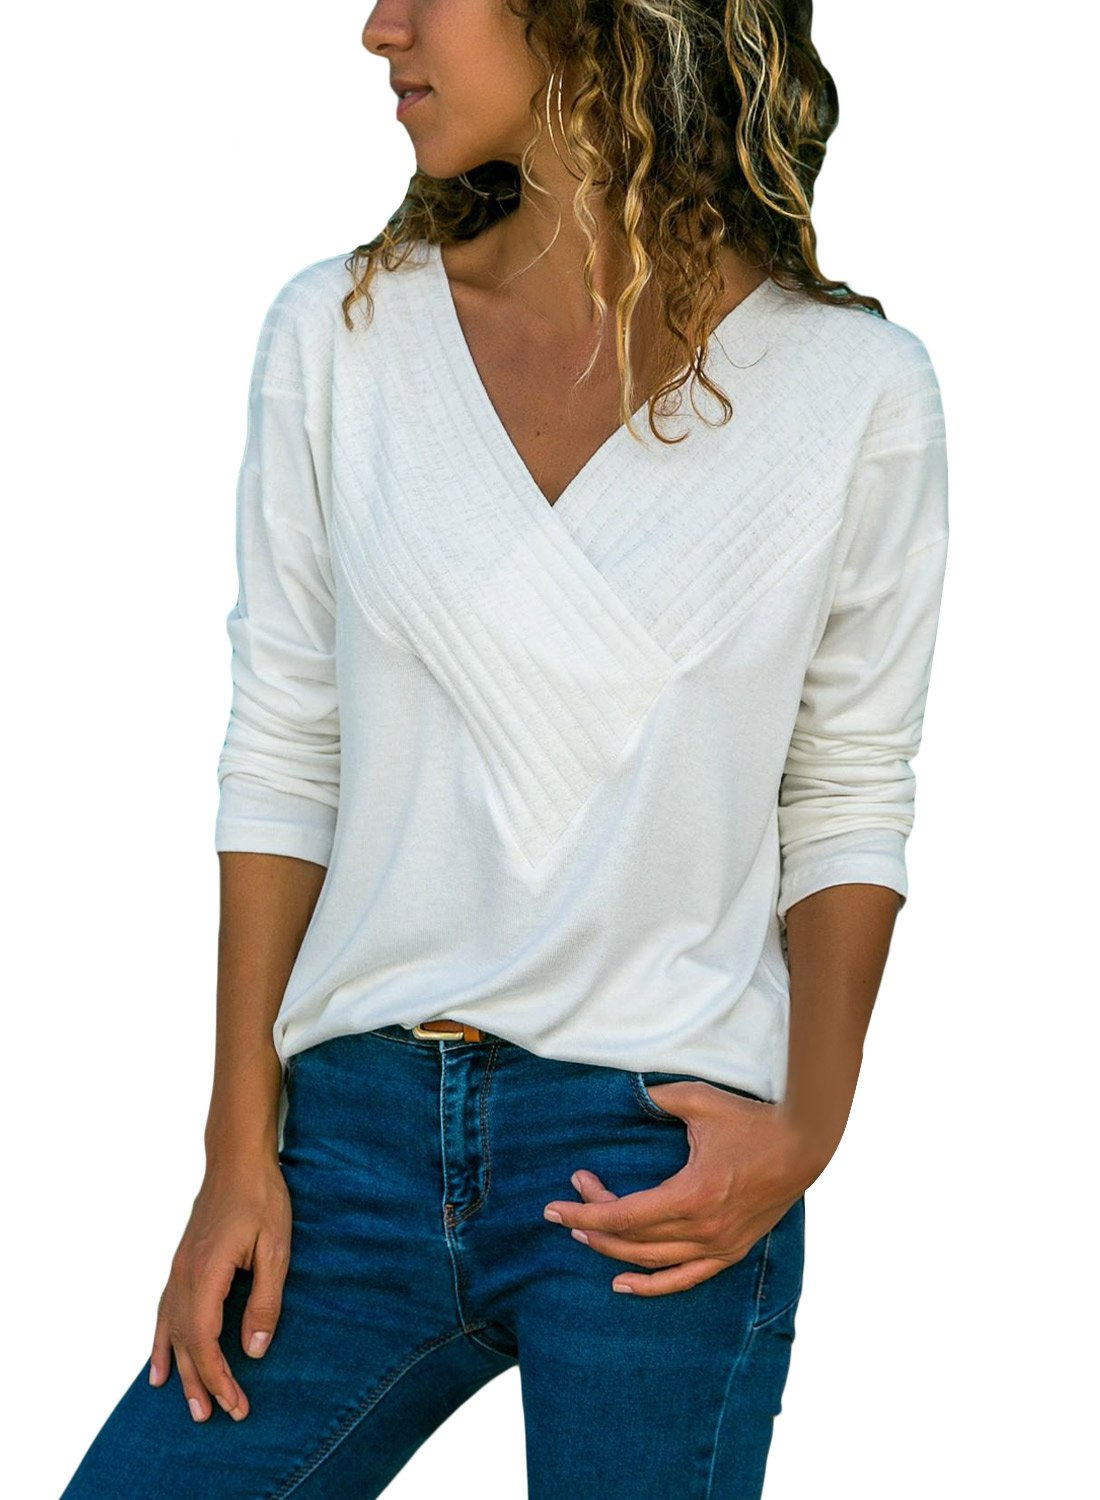 BLENCOT Women's Wrap Front Blouses Long Sleeve V Neck White Solid Basic Tee Shirt Casual Loose Blouse Tops Large